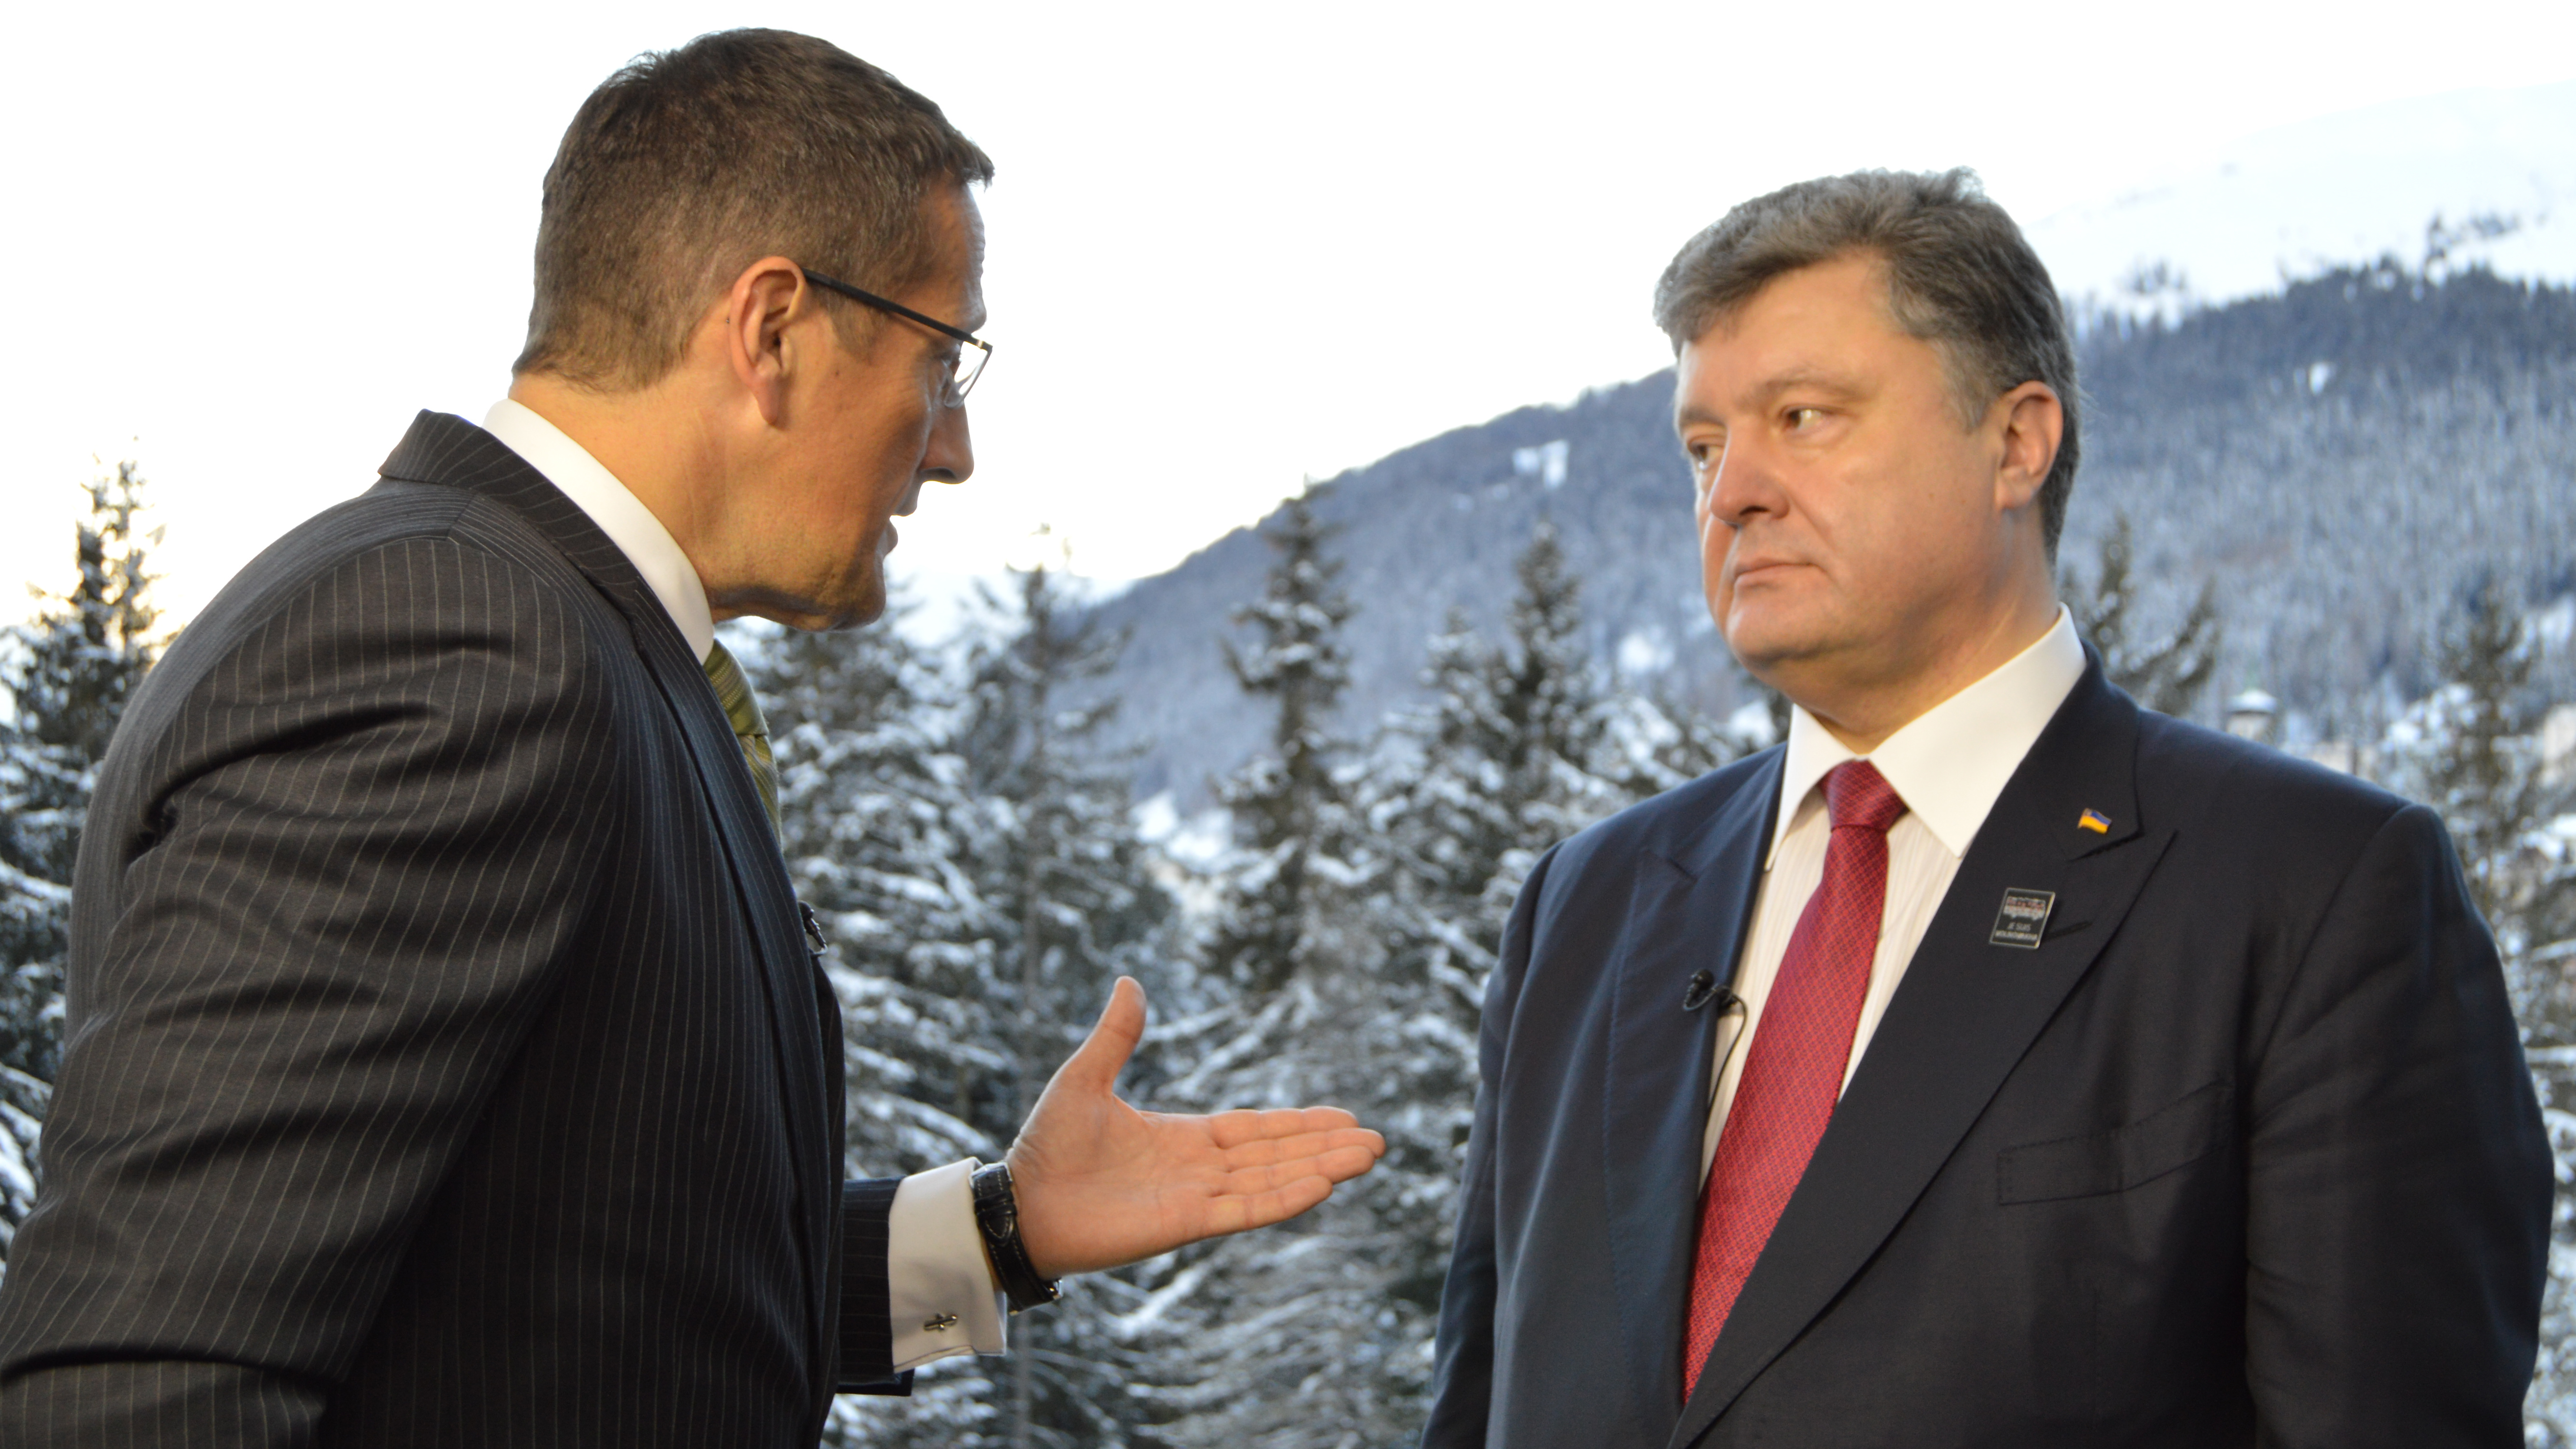 Ukrainian president tells CNN Ukraine may seek more sanctions against Russia